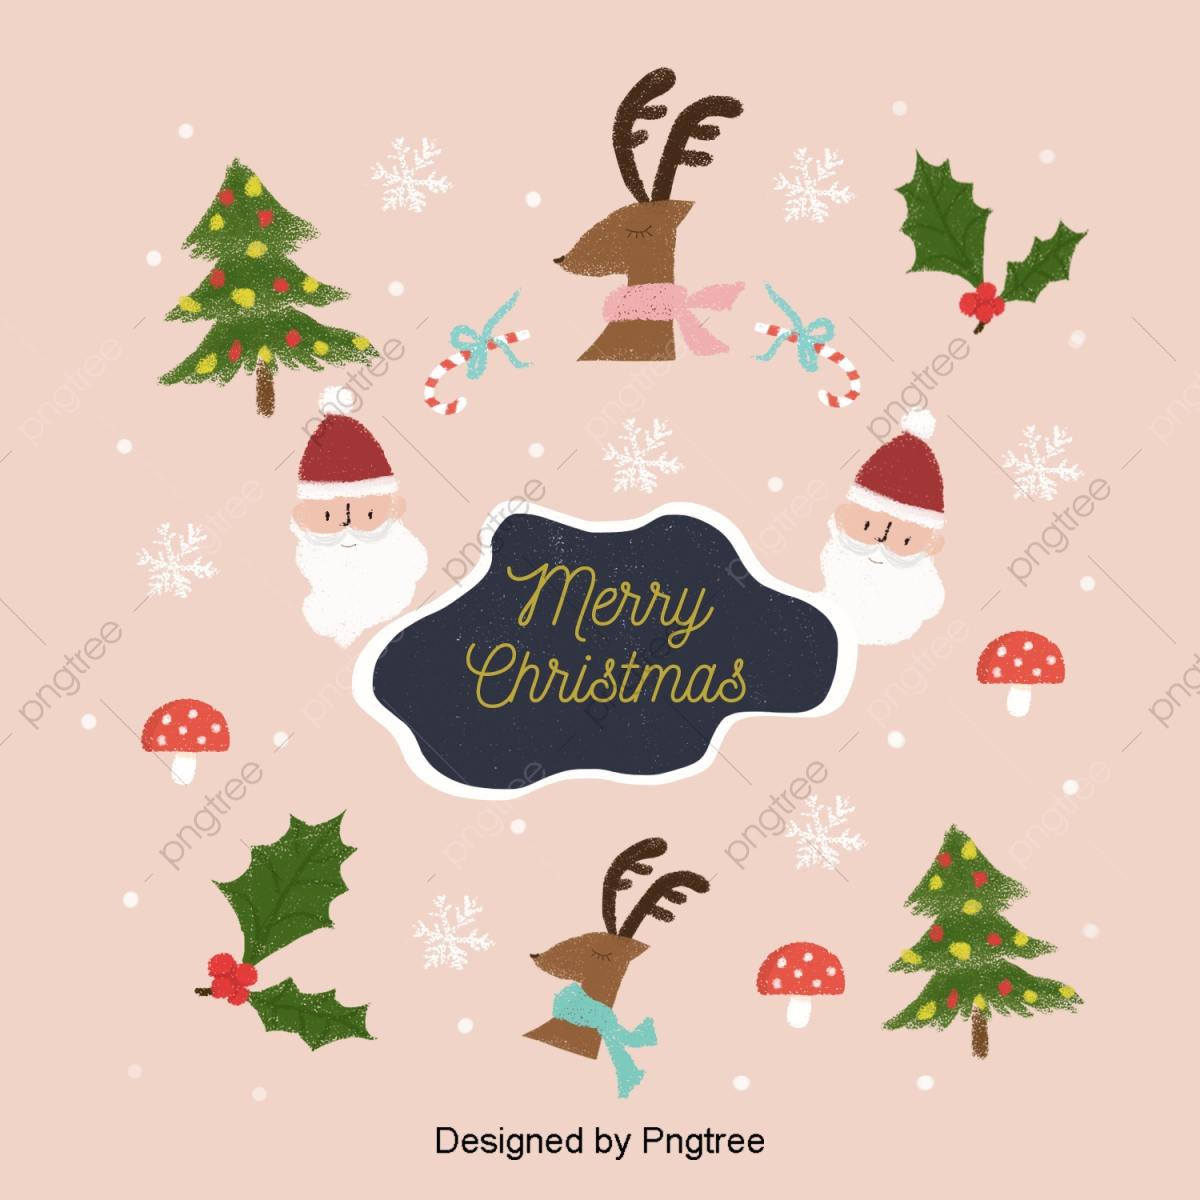 Christmas Illustrations Png.The Lovely Background Of Christmas Illustrations Elk